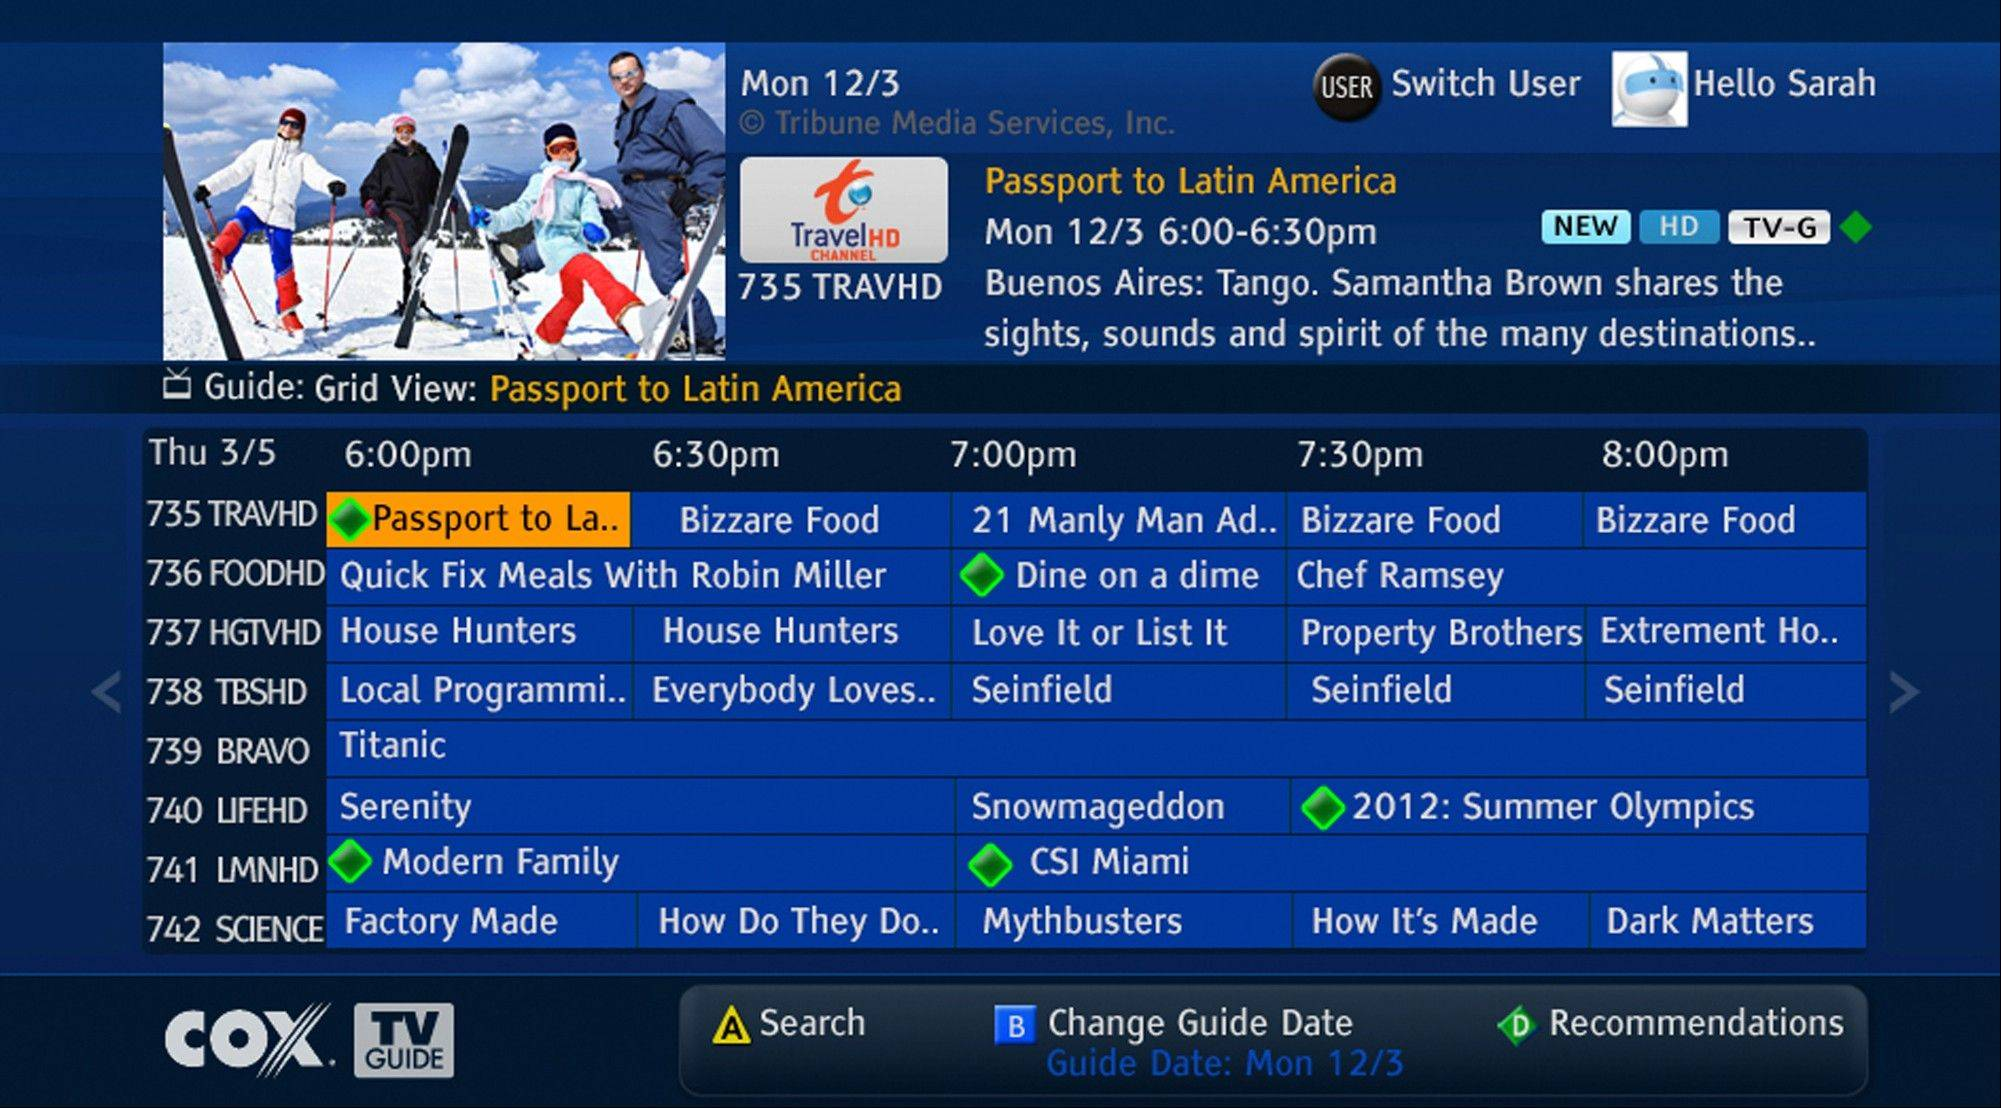 This image provided by Cox Communications shows a program guide for television set-top boxes to make it easier to find programs available live or on demand. ItÌs an important development for cable TV companies, as they face criticisms for providing hundreds of channels that customers donÌt watch. Making shows easier to find helps the companies justify all those channels.